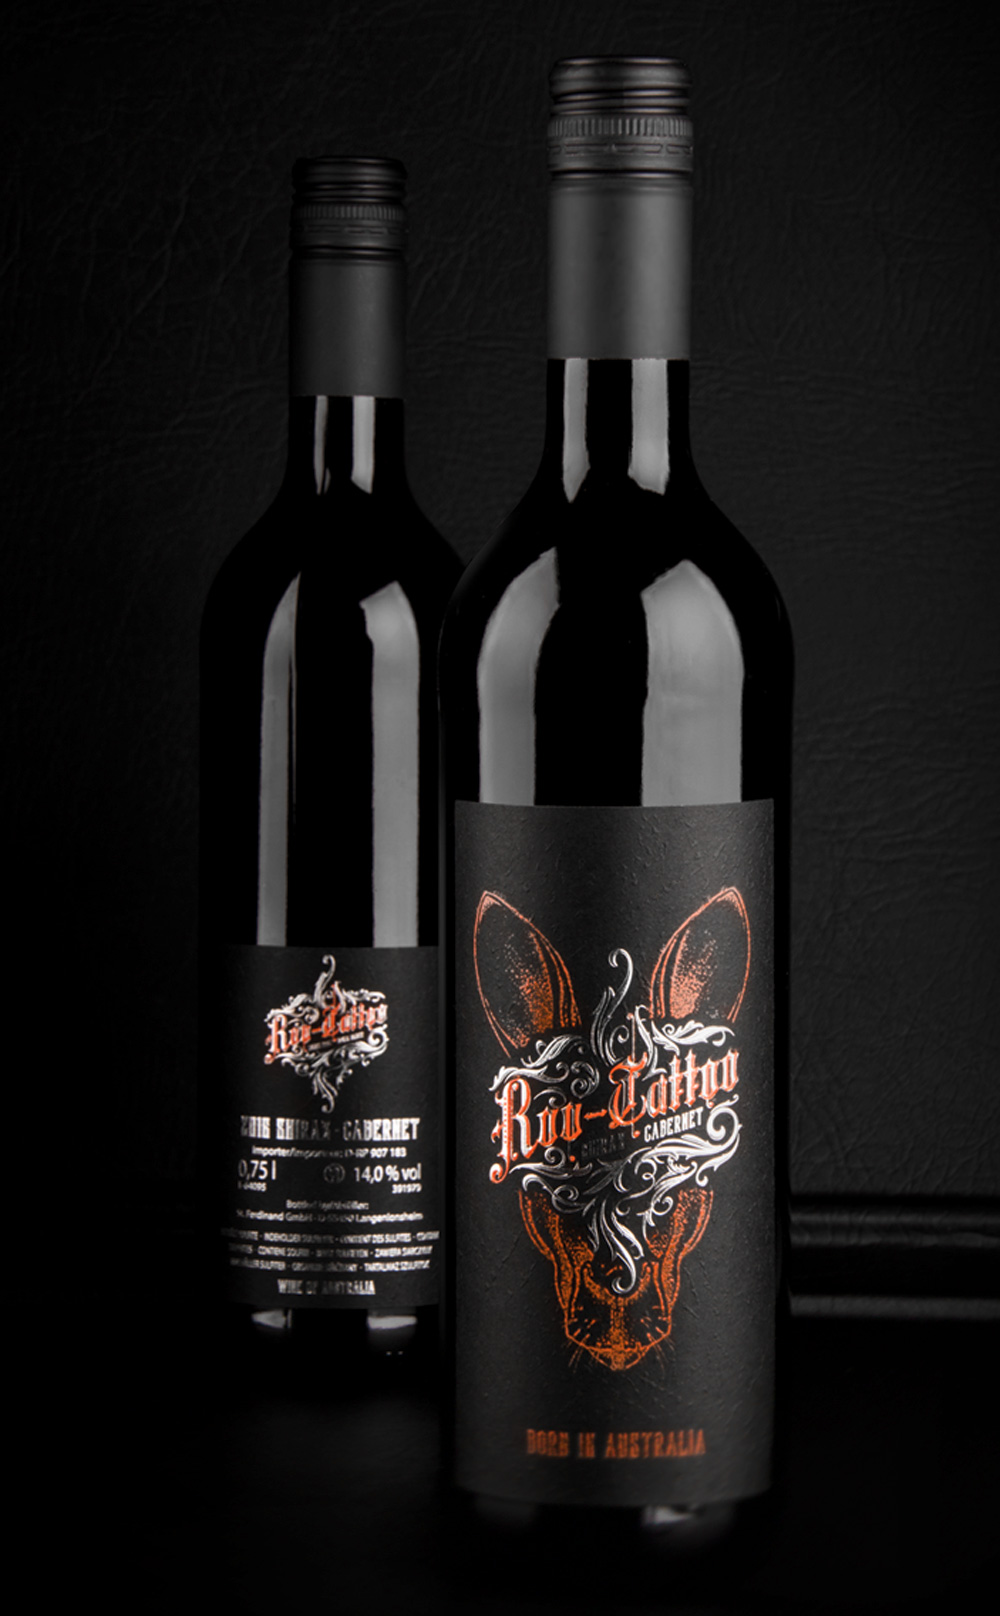 Product shot of two wine bottles standing next to each other in front of a black background. One further front showing the frontlabel and another more in the back presenting the back label.